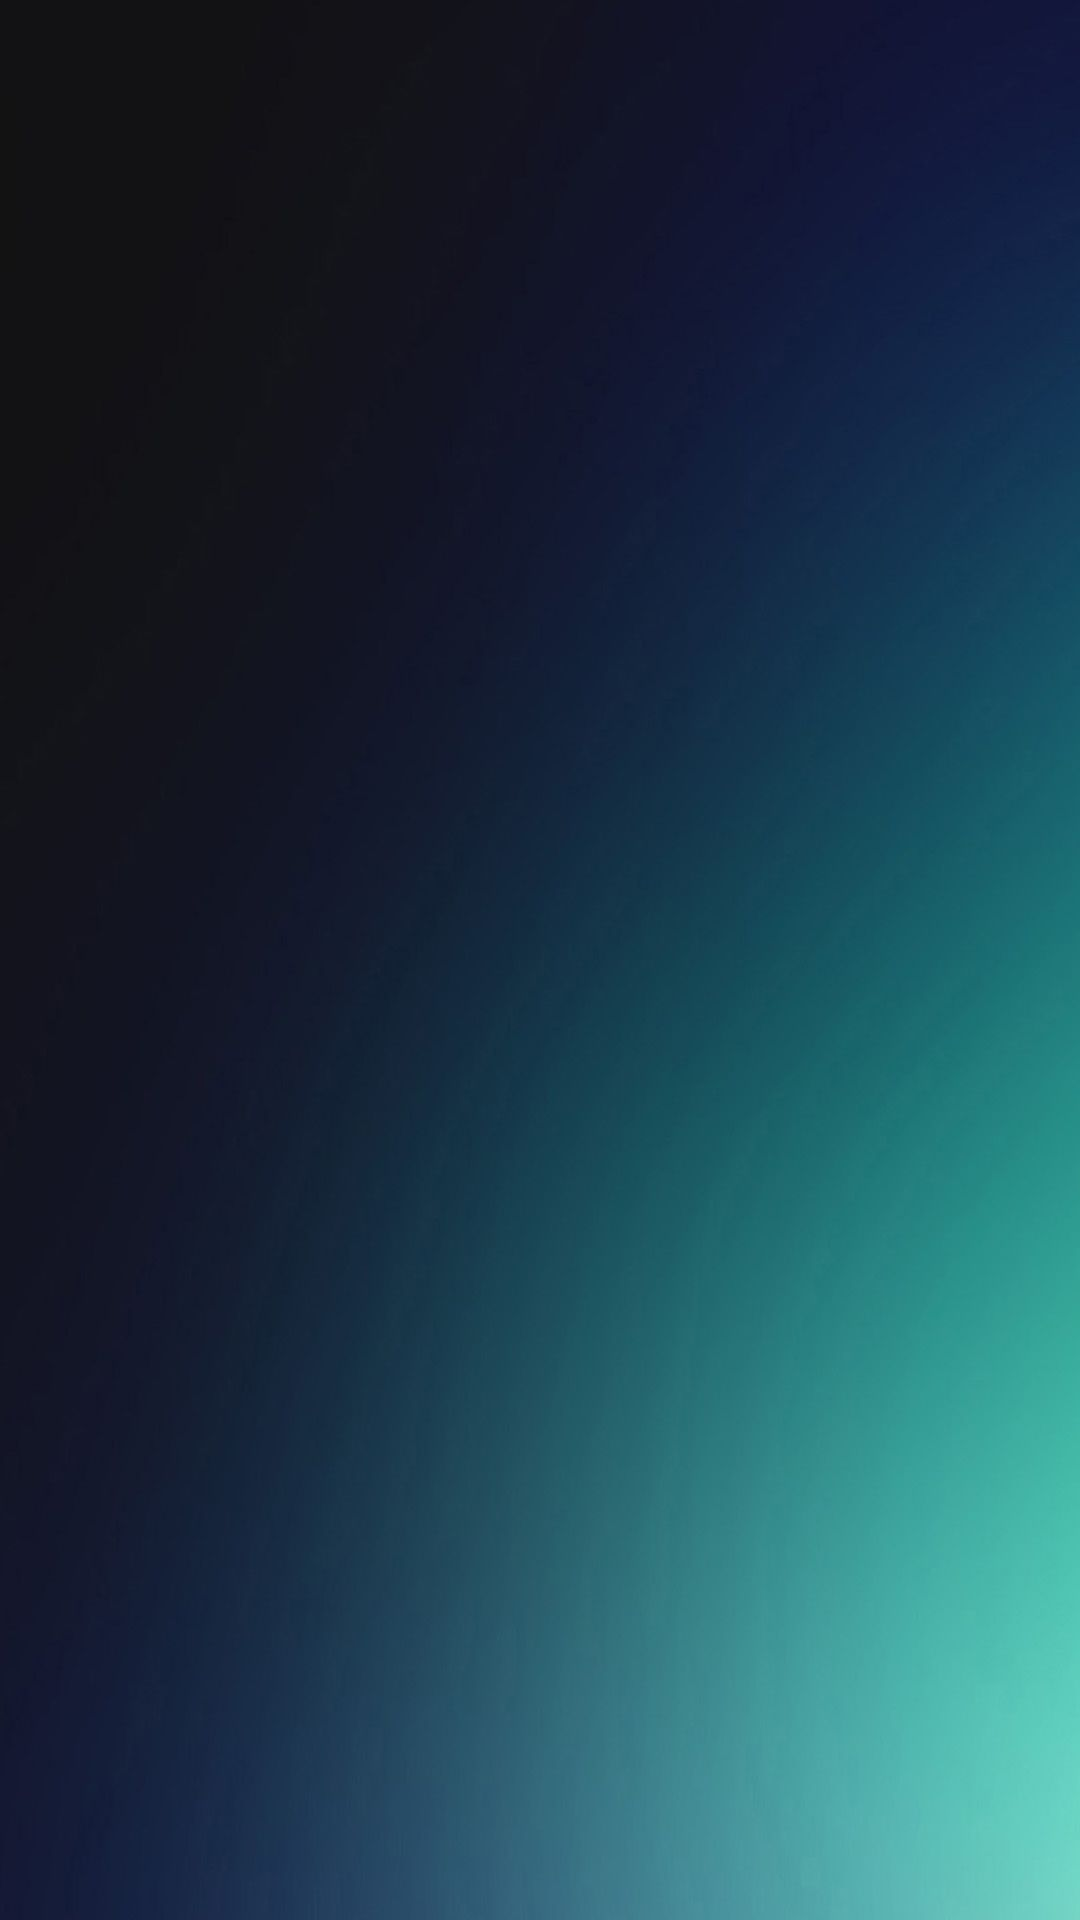 1080x1920 Blue Green Color Htc One M8 wallpaper | Htc One M8 Wallpaper